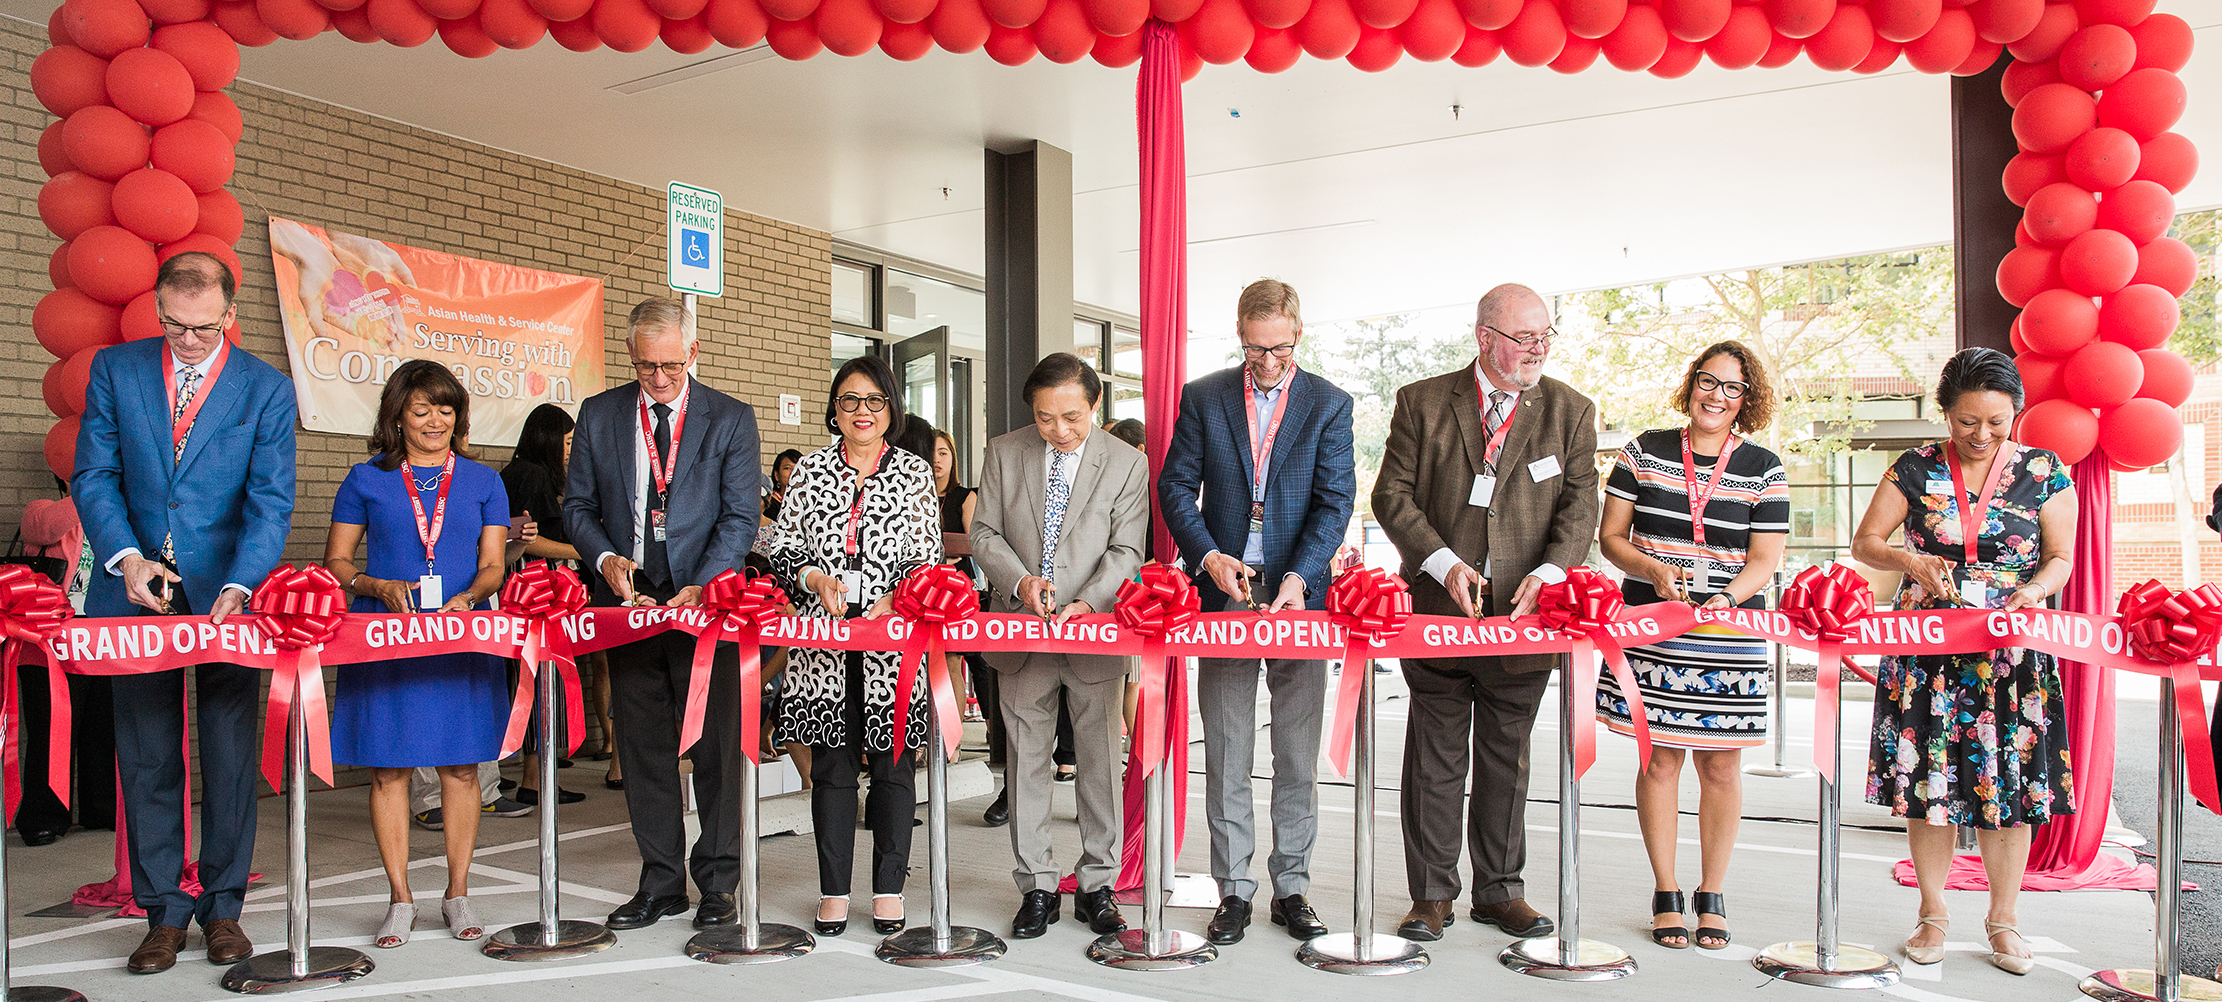 Asian Health & Service Center Grand Opening